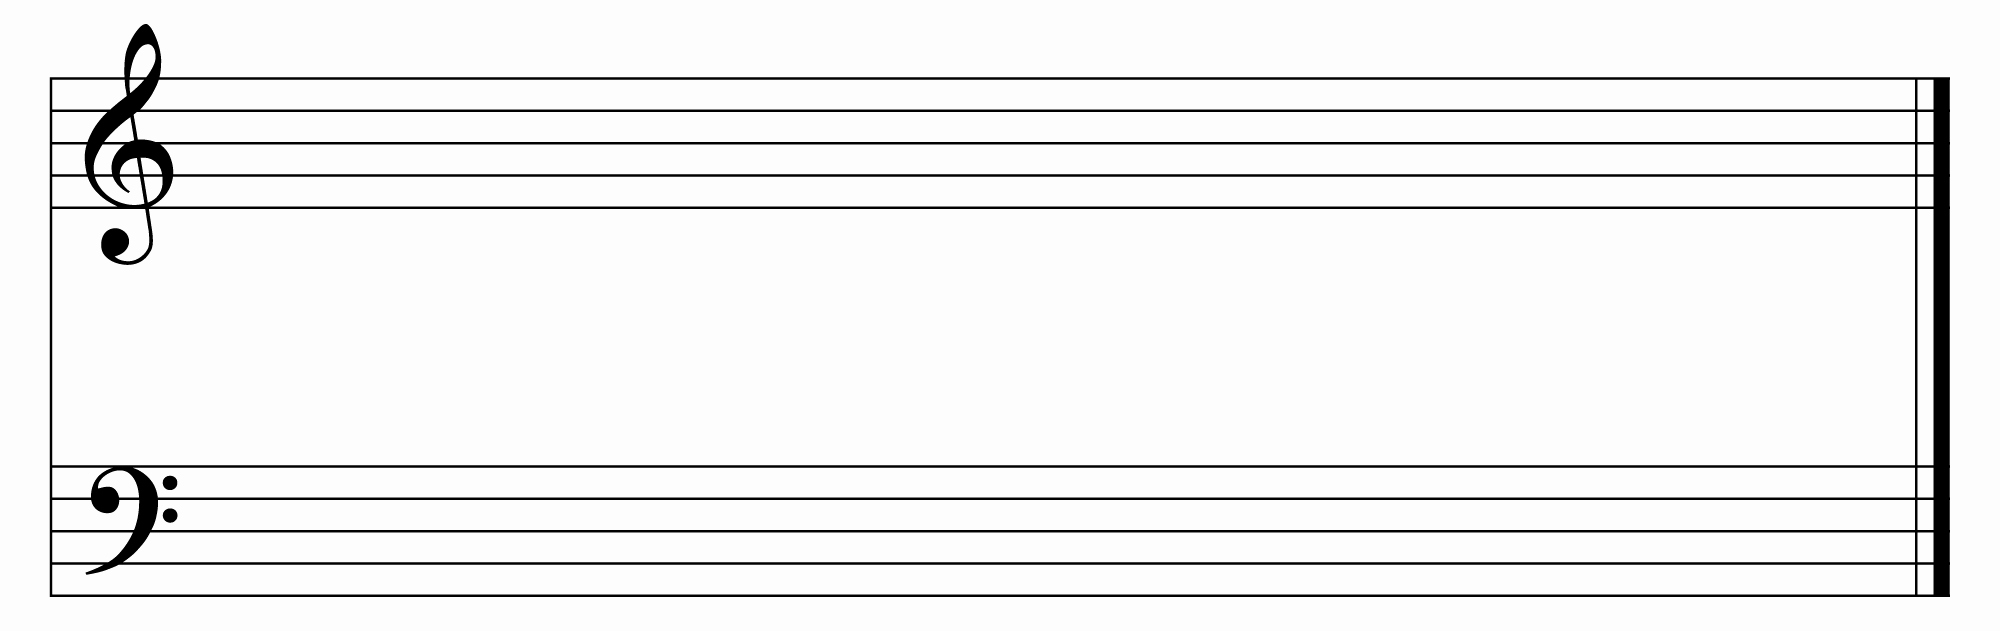 Blank Sheet Music Bass Clef Inspirational the Gallery for Blank Bass Clef Music Staff